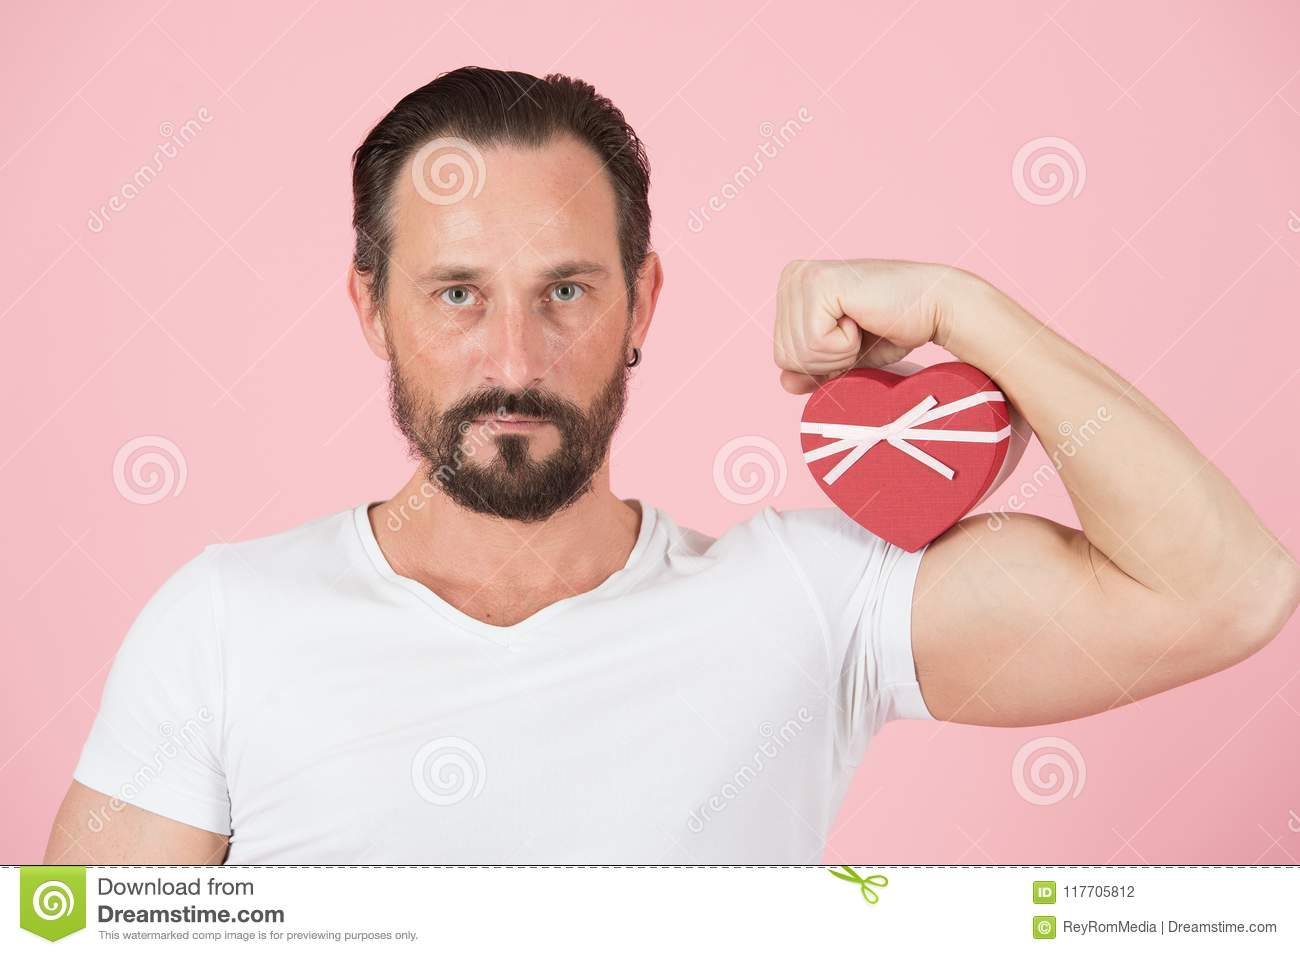 Holding Heart Against A Bicep Muscle For Valentines Day Man And